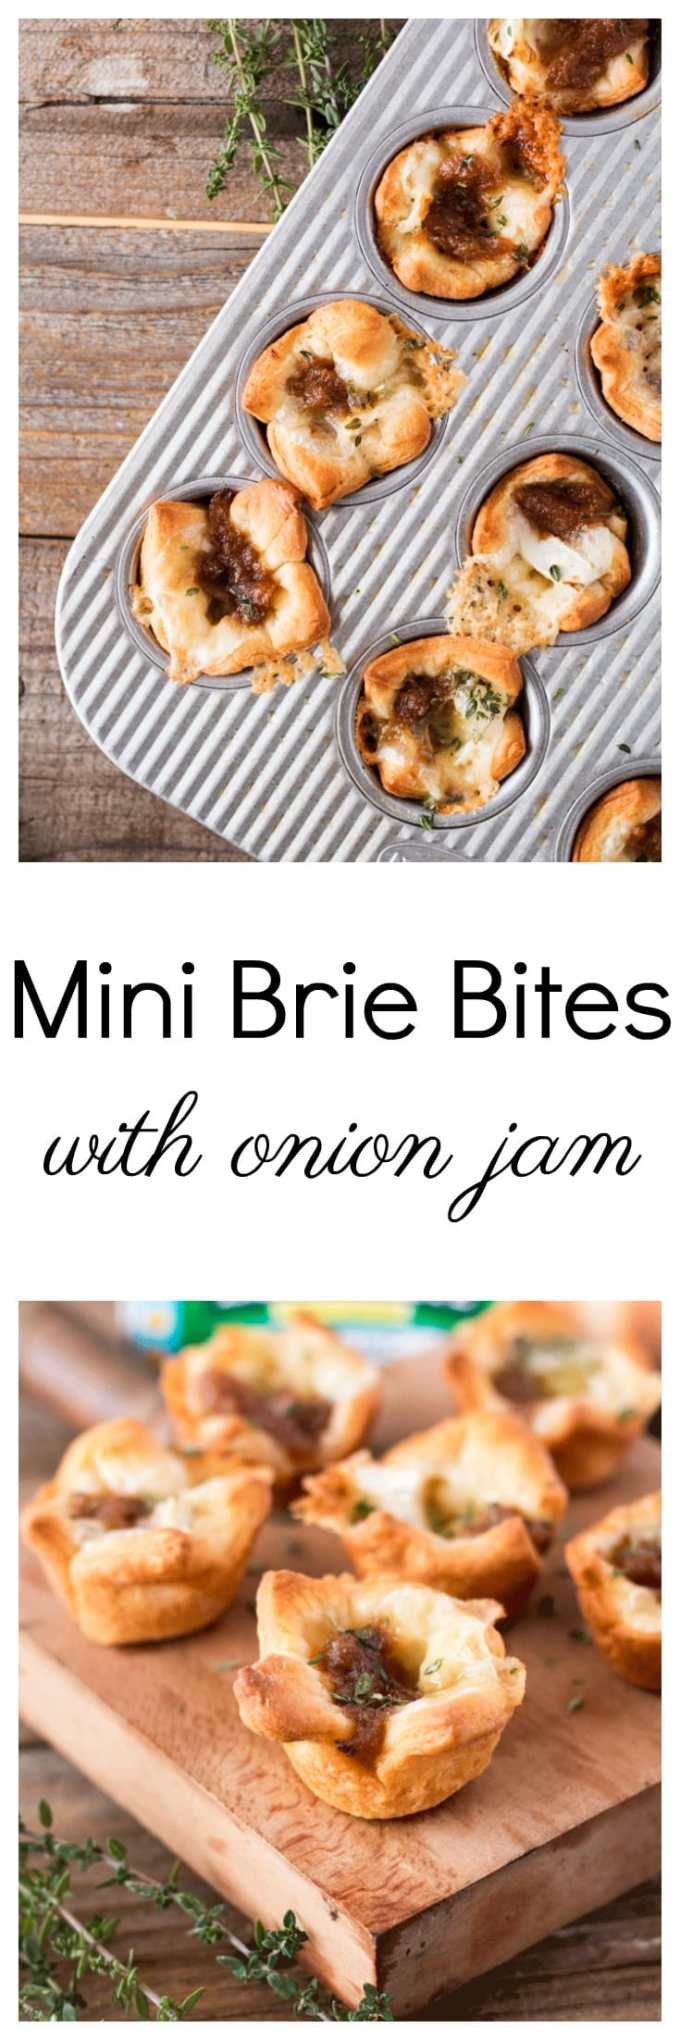 You are going to just love these Mini Brie Bites with Onion Jam. They're cute, easy to handle, bite into, and serve at a party.Each bite features a mini-size portion of creamy brie, wrapped in flaky crescent roll and adorned with a little dollop of onion jam. That's it. Bake and serve just like that – guests will absolutely be impressed. #holidaybaking #appetizer #lastminuteappetizer